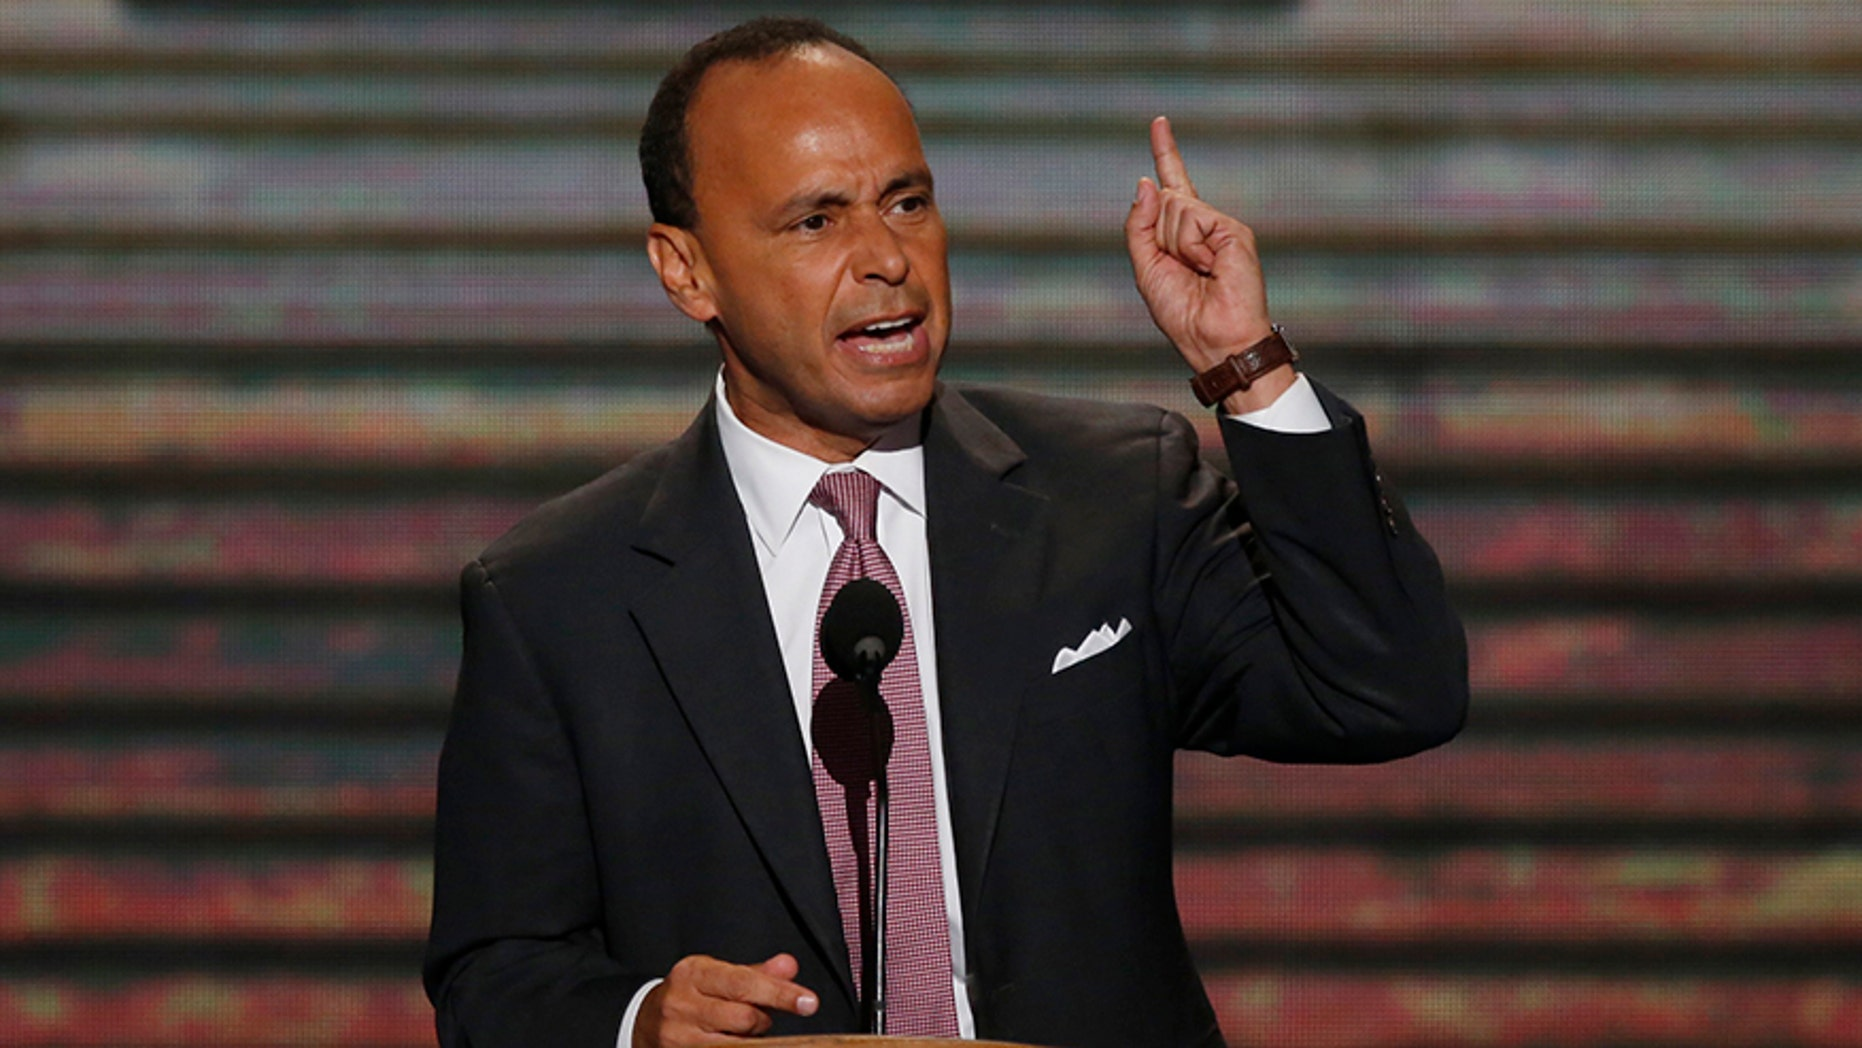 U.S. Rep. Luis Gutierrez (D-IL) addresses delegates during the second session of the Democratic National Convention in Charlotte, North Carolina, September 5, 2012.